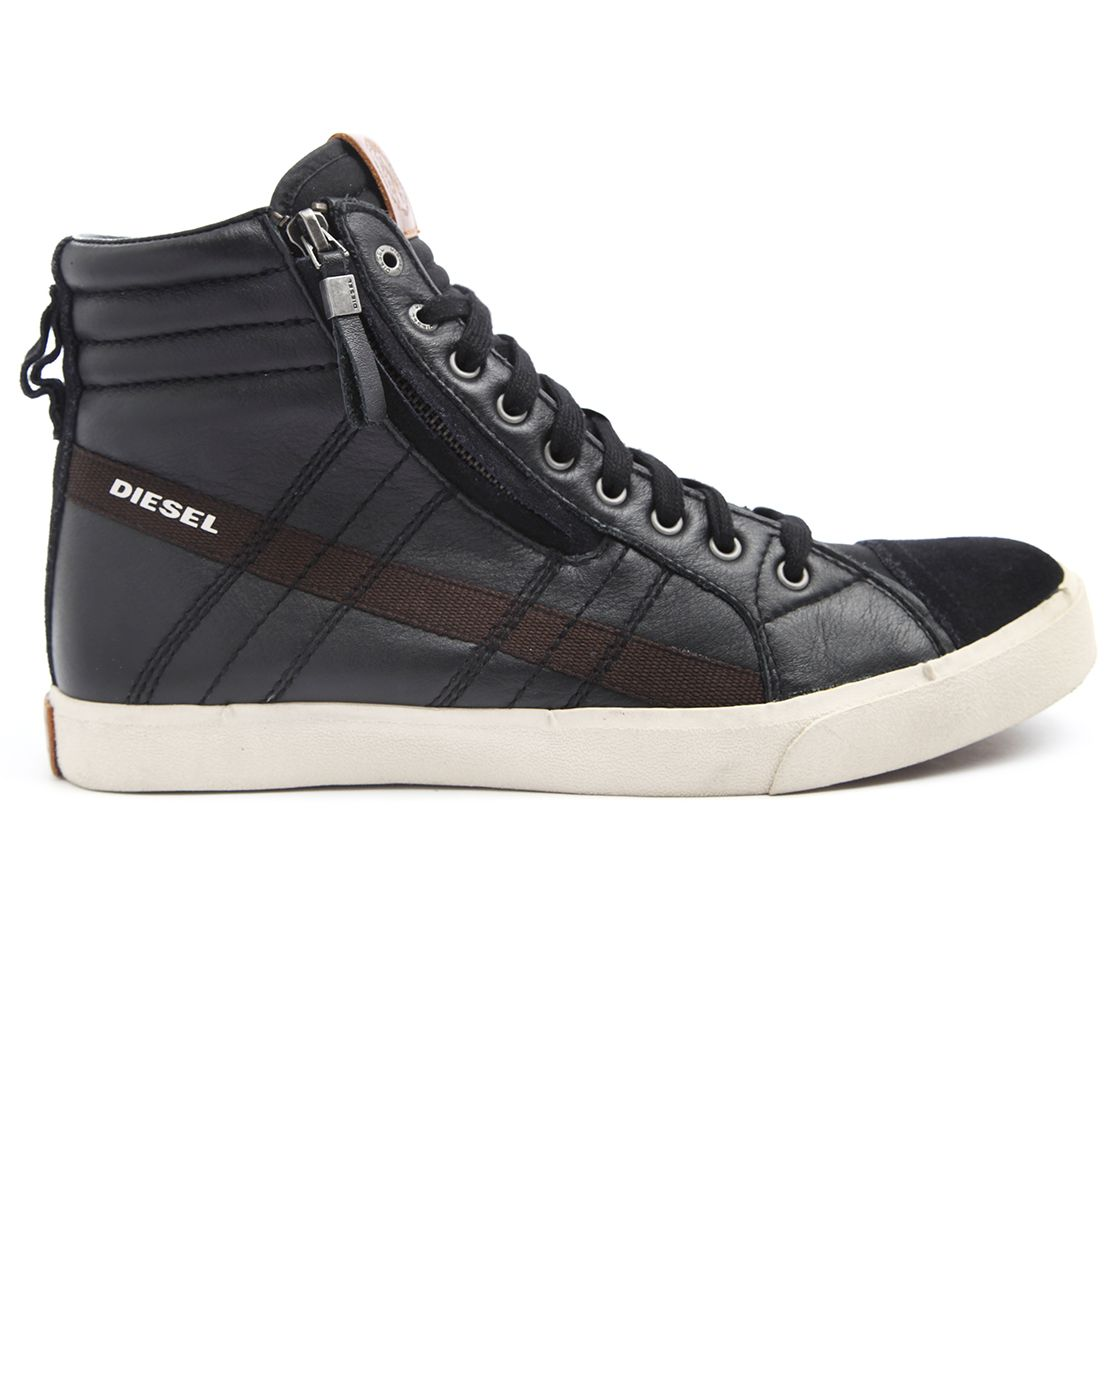 D-String Black Leather High-Top Sneakers   Exclusive Shoe Collection ... a31c08d8ecc3